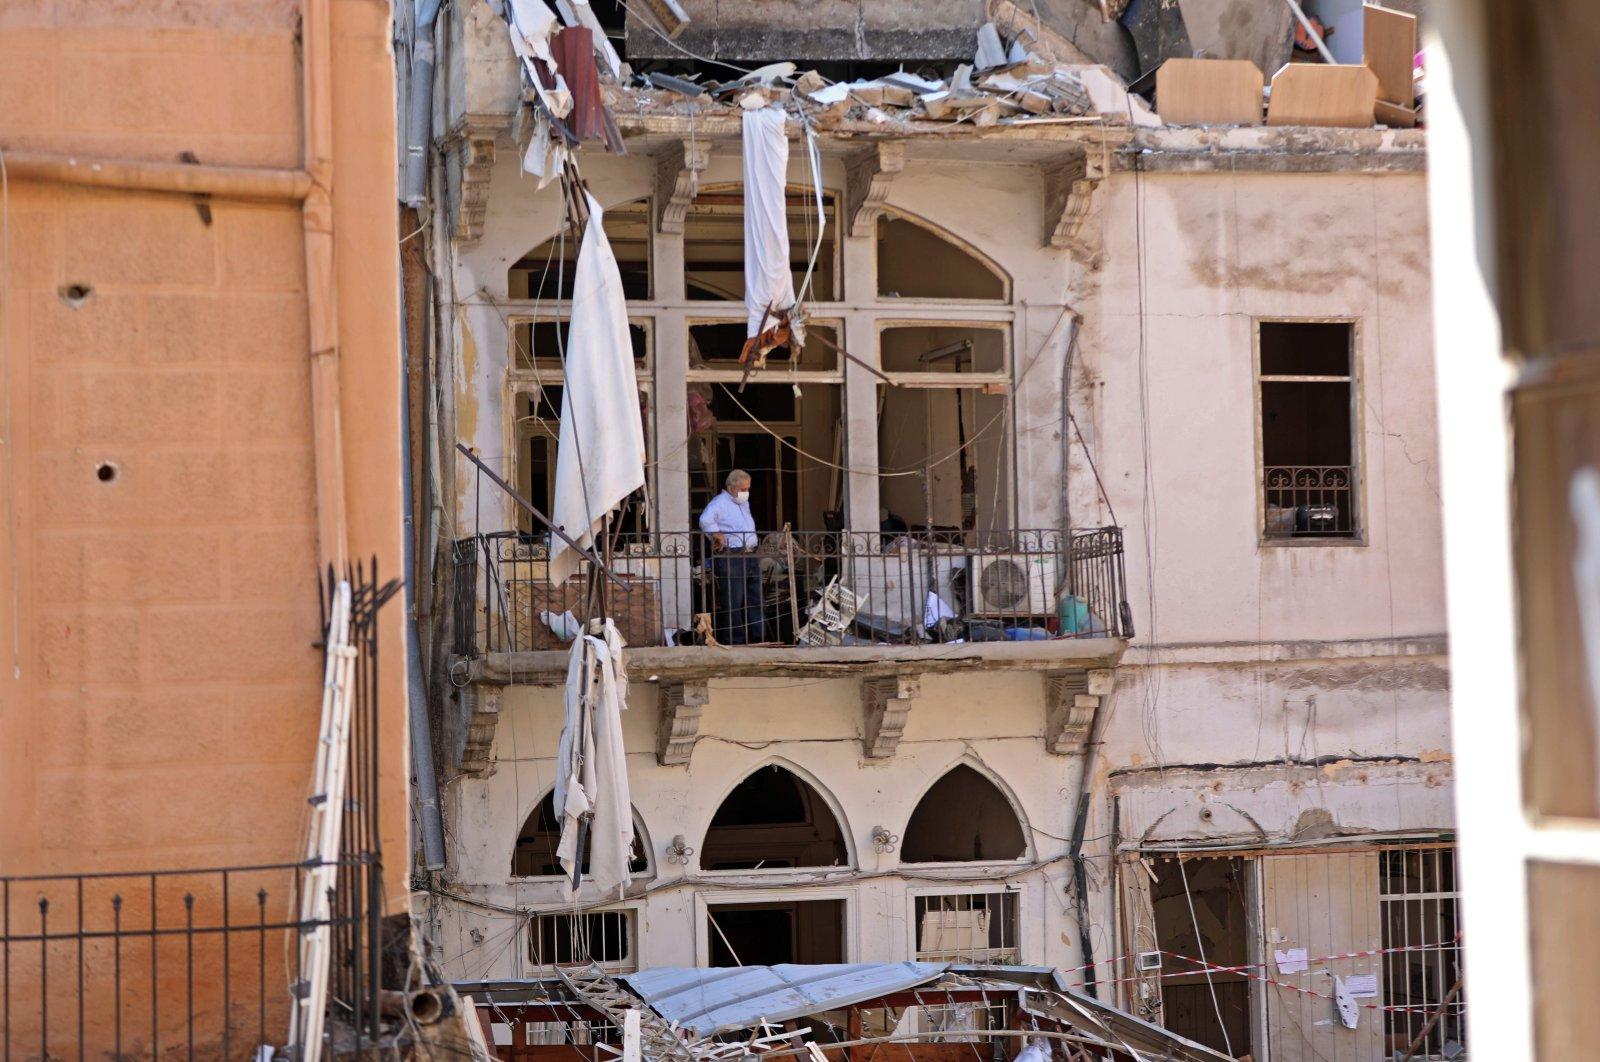 A man, clad in a mask due to the COVID-19 pandemic, stands amid debris on a balcony in the partially destroyed neighborhood of Mar Mikhael, Beirut, Lebanon, Aug. 14, 2020. (AFP Photo)